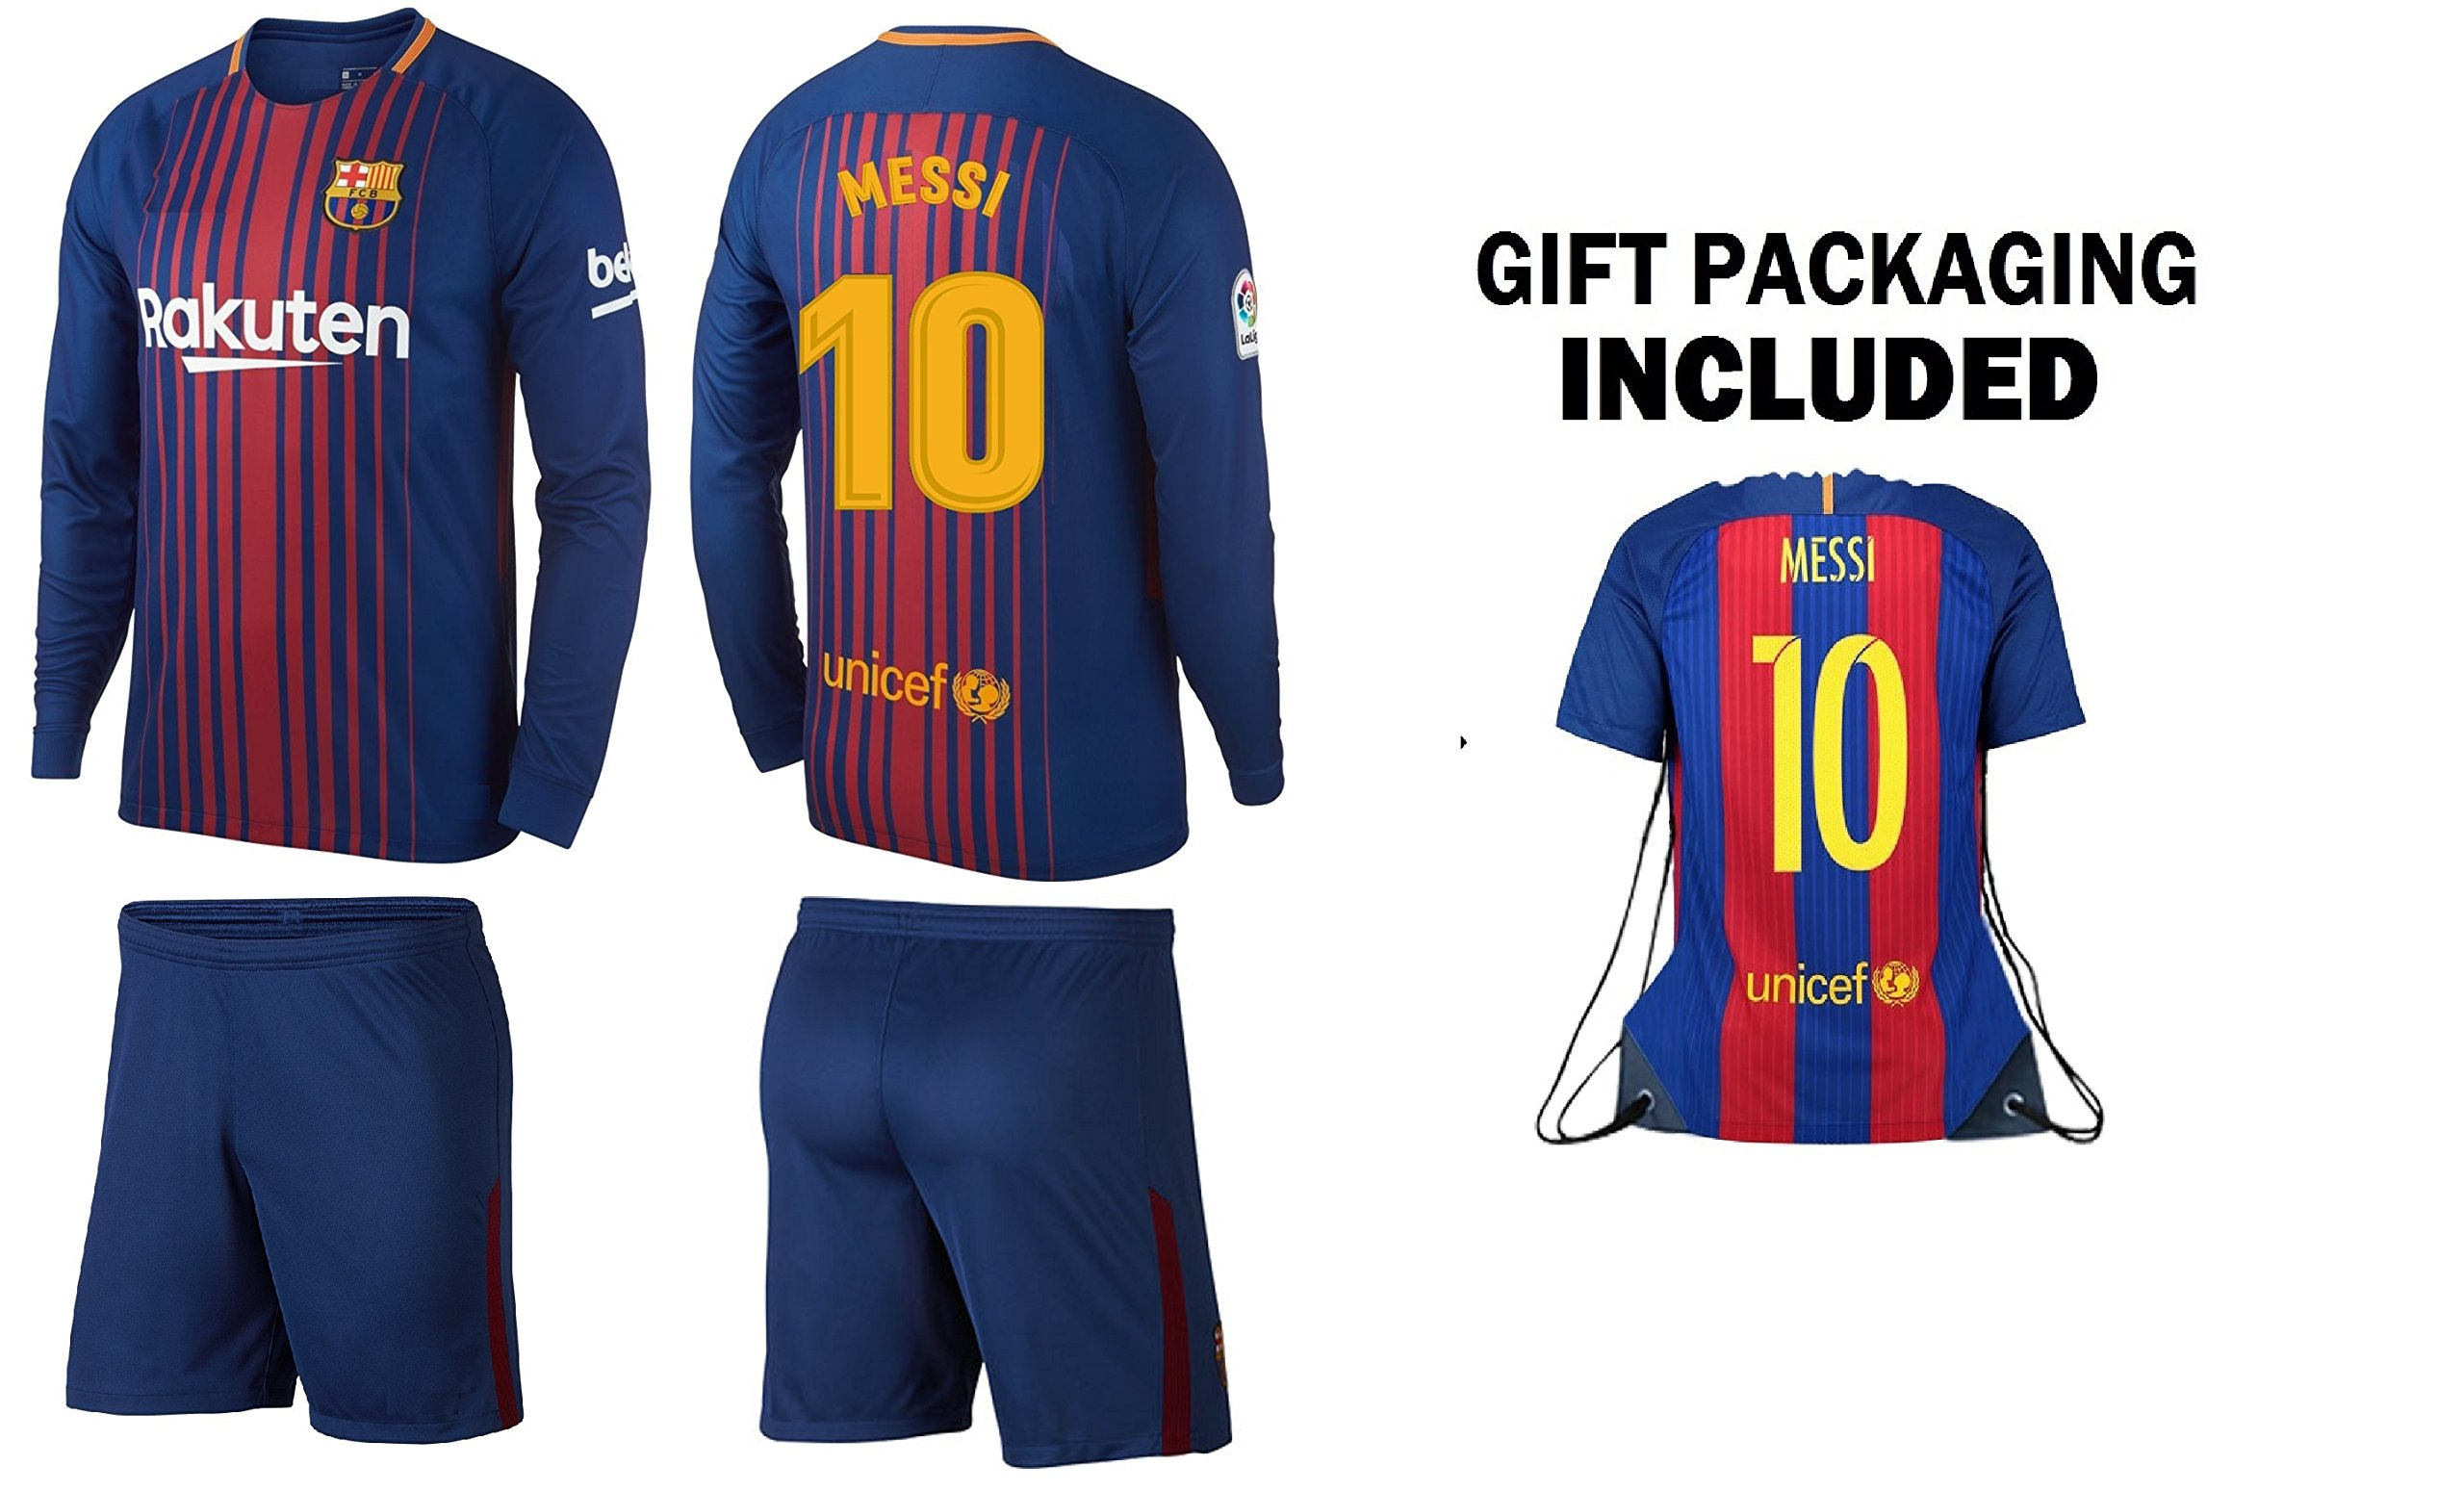 b6169cdd657 Get Quotations · Messi  10 Barcelona jersey Youth 3 in 1 Soccer Gift Set  for kids ✓ Long